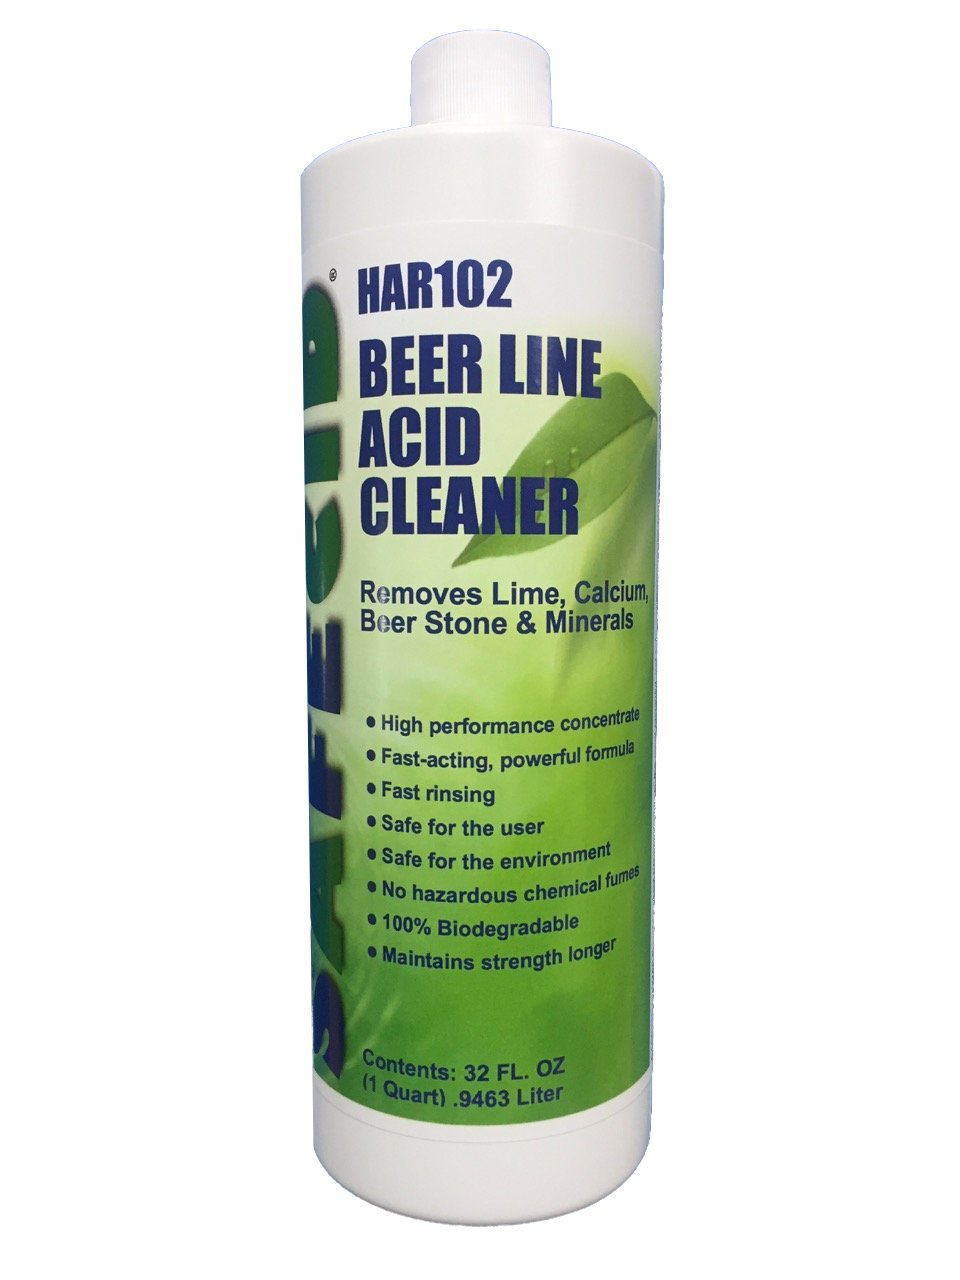 SAFECID Beer Line Acid Cleaner by SAFECID